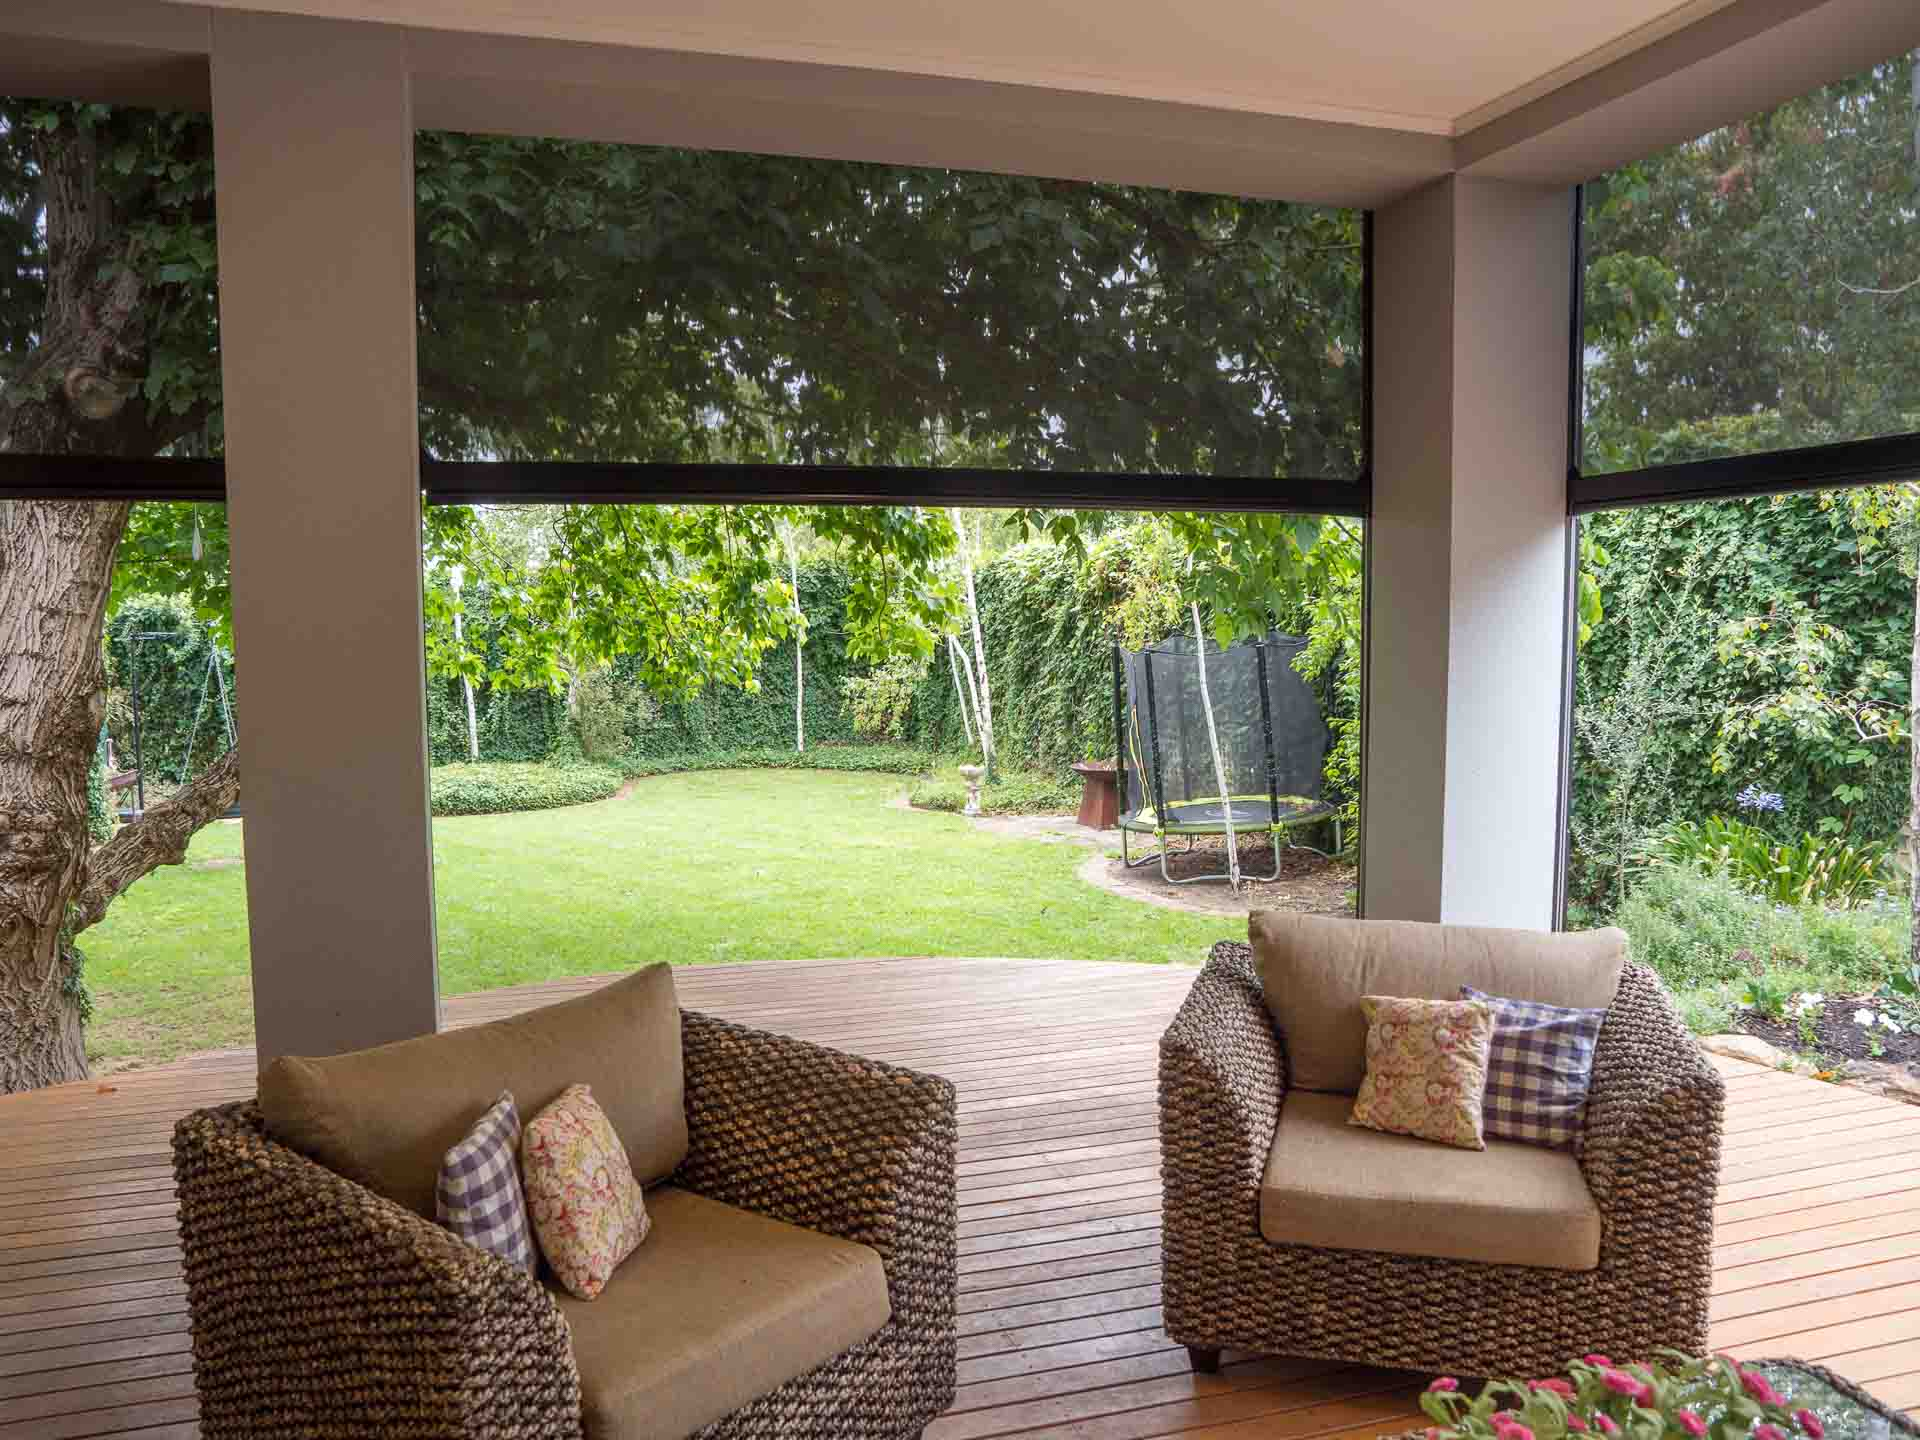 Make sure your outdoor roller blinds last as long as possible with these handy tips - Wind them up or keep them down, Australian Outdoor Living.